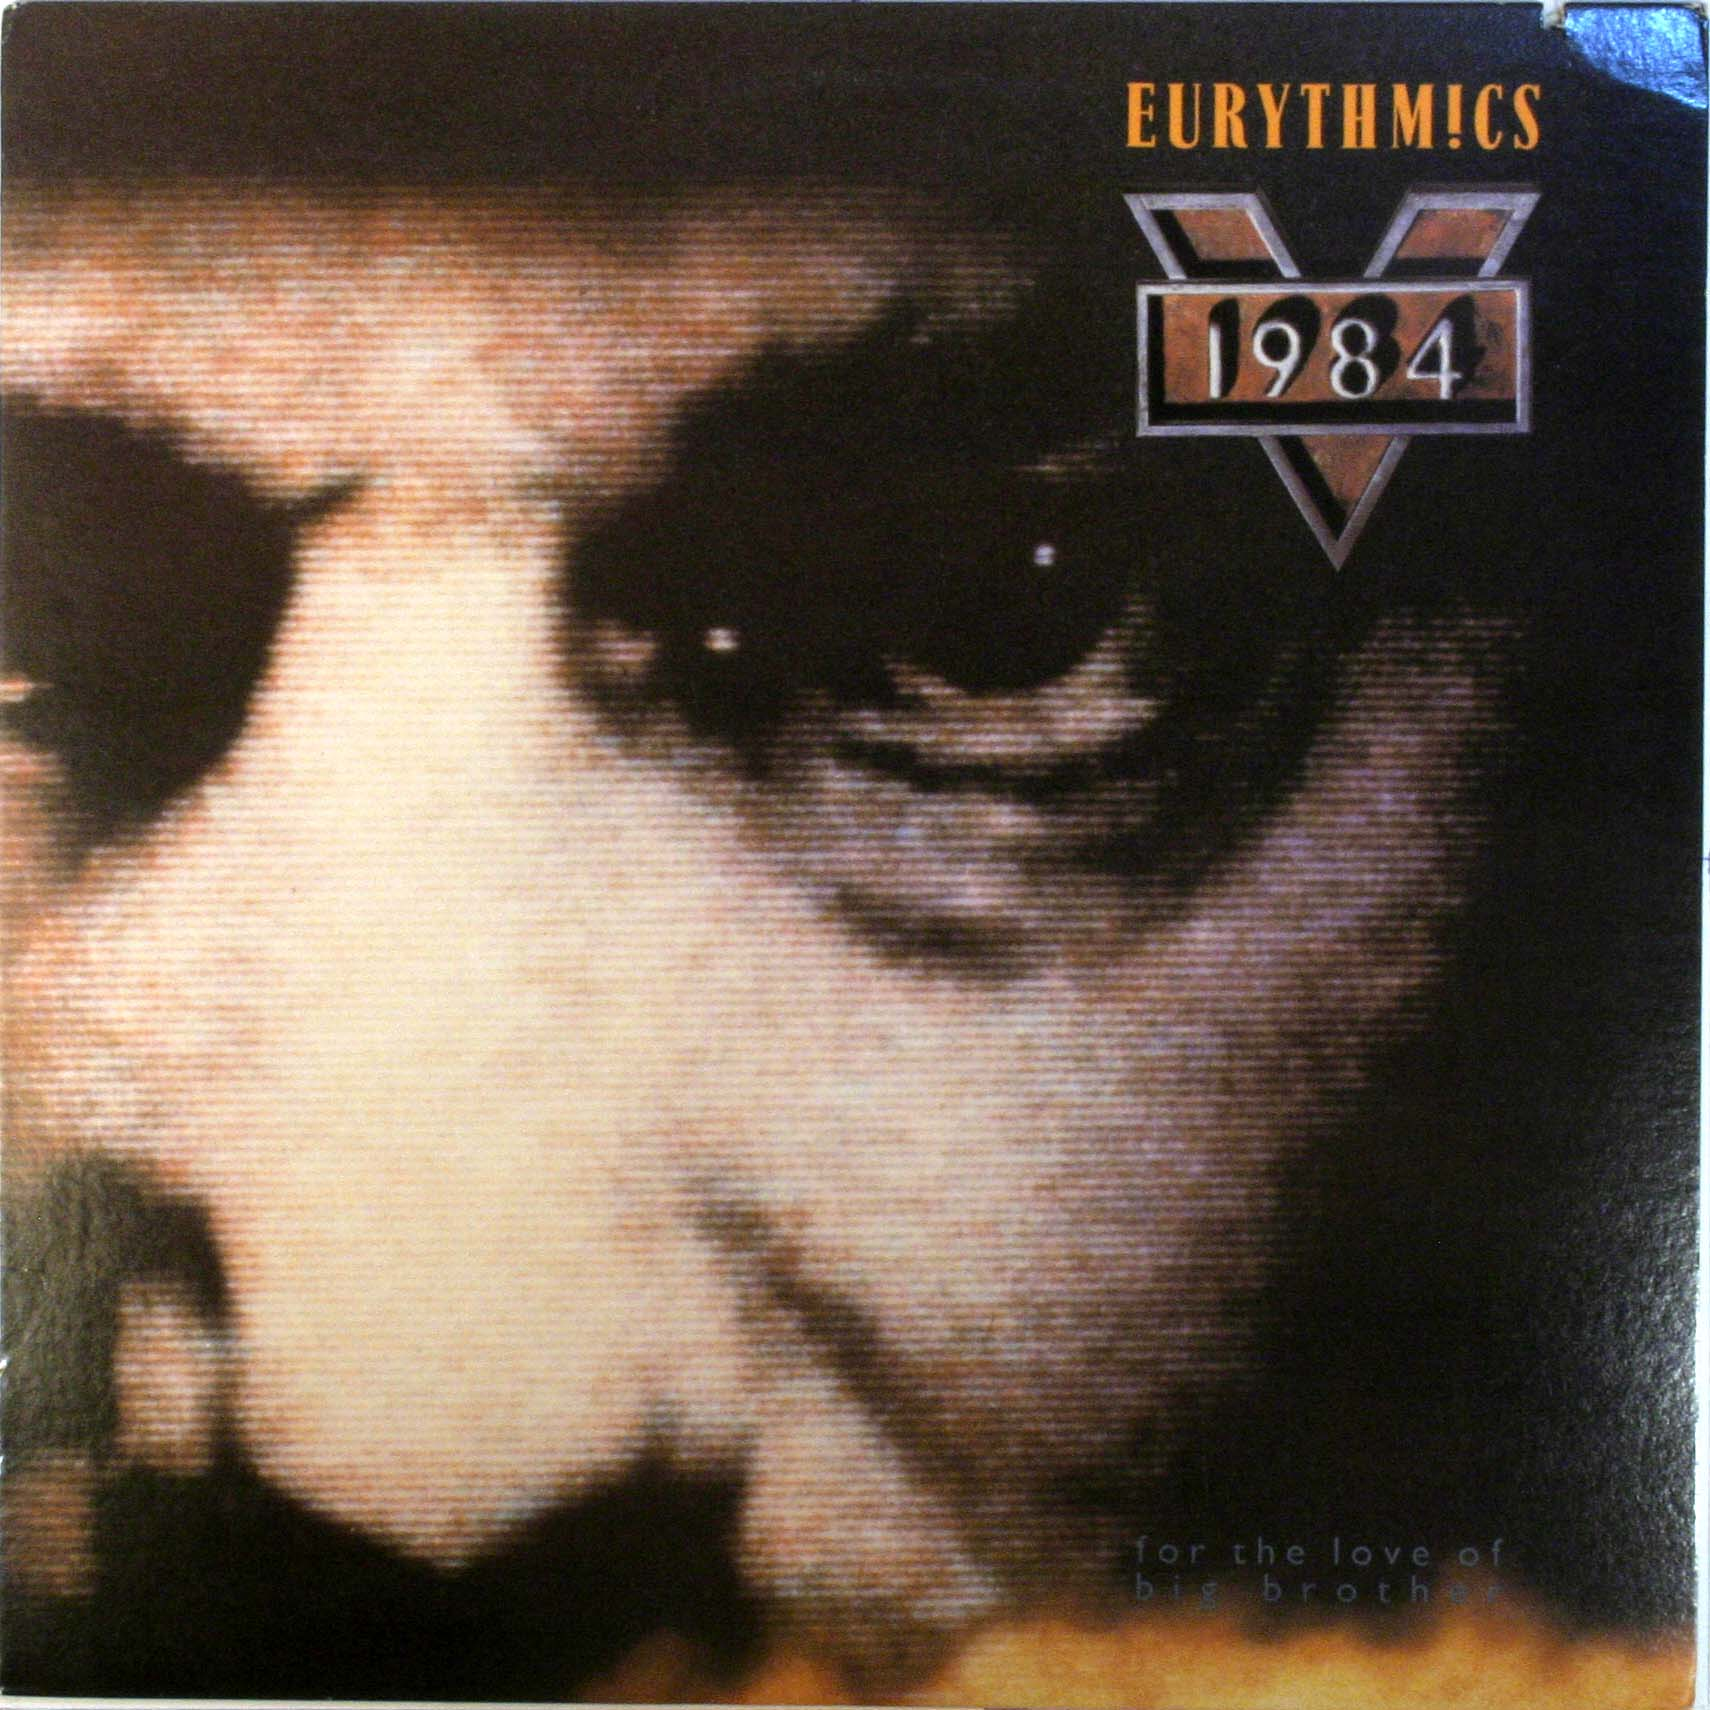 Eurythmics - 1984 LP